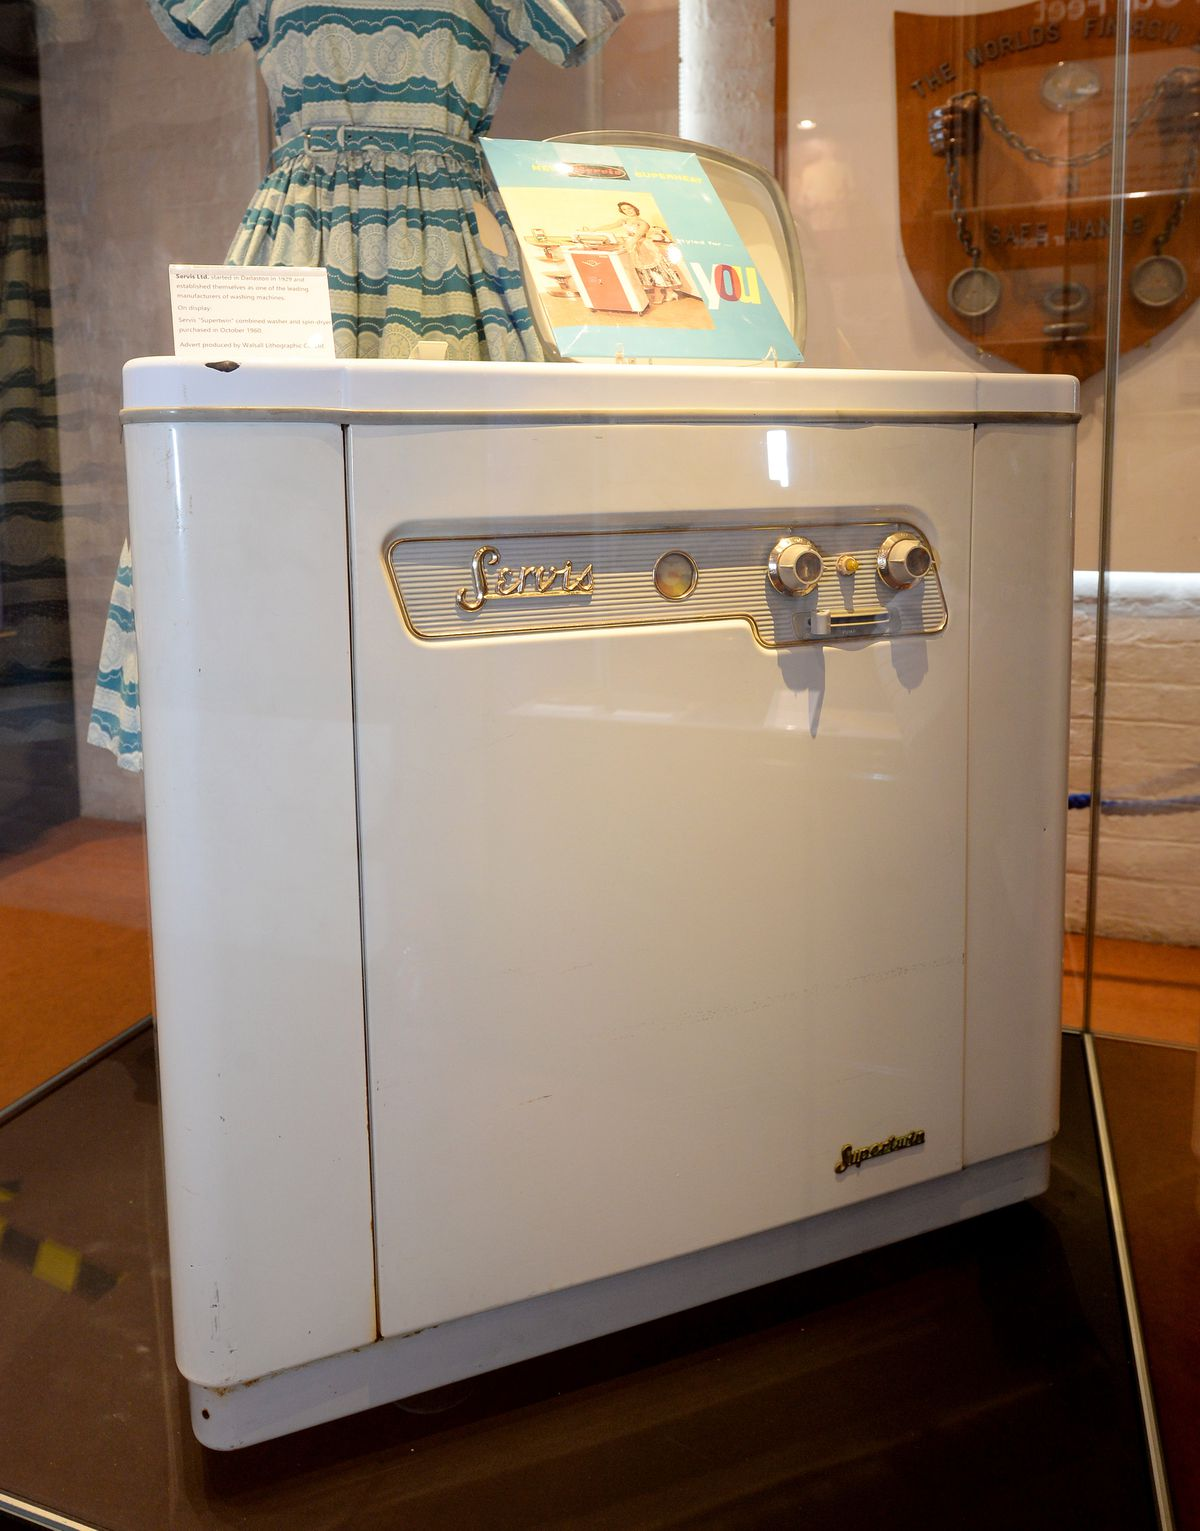 Servis Ltd started in Darlaston in 1929, and this was one of their early washing machines